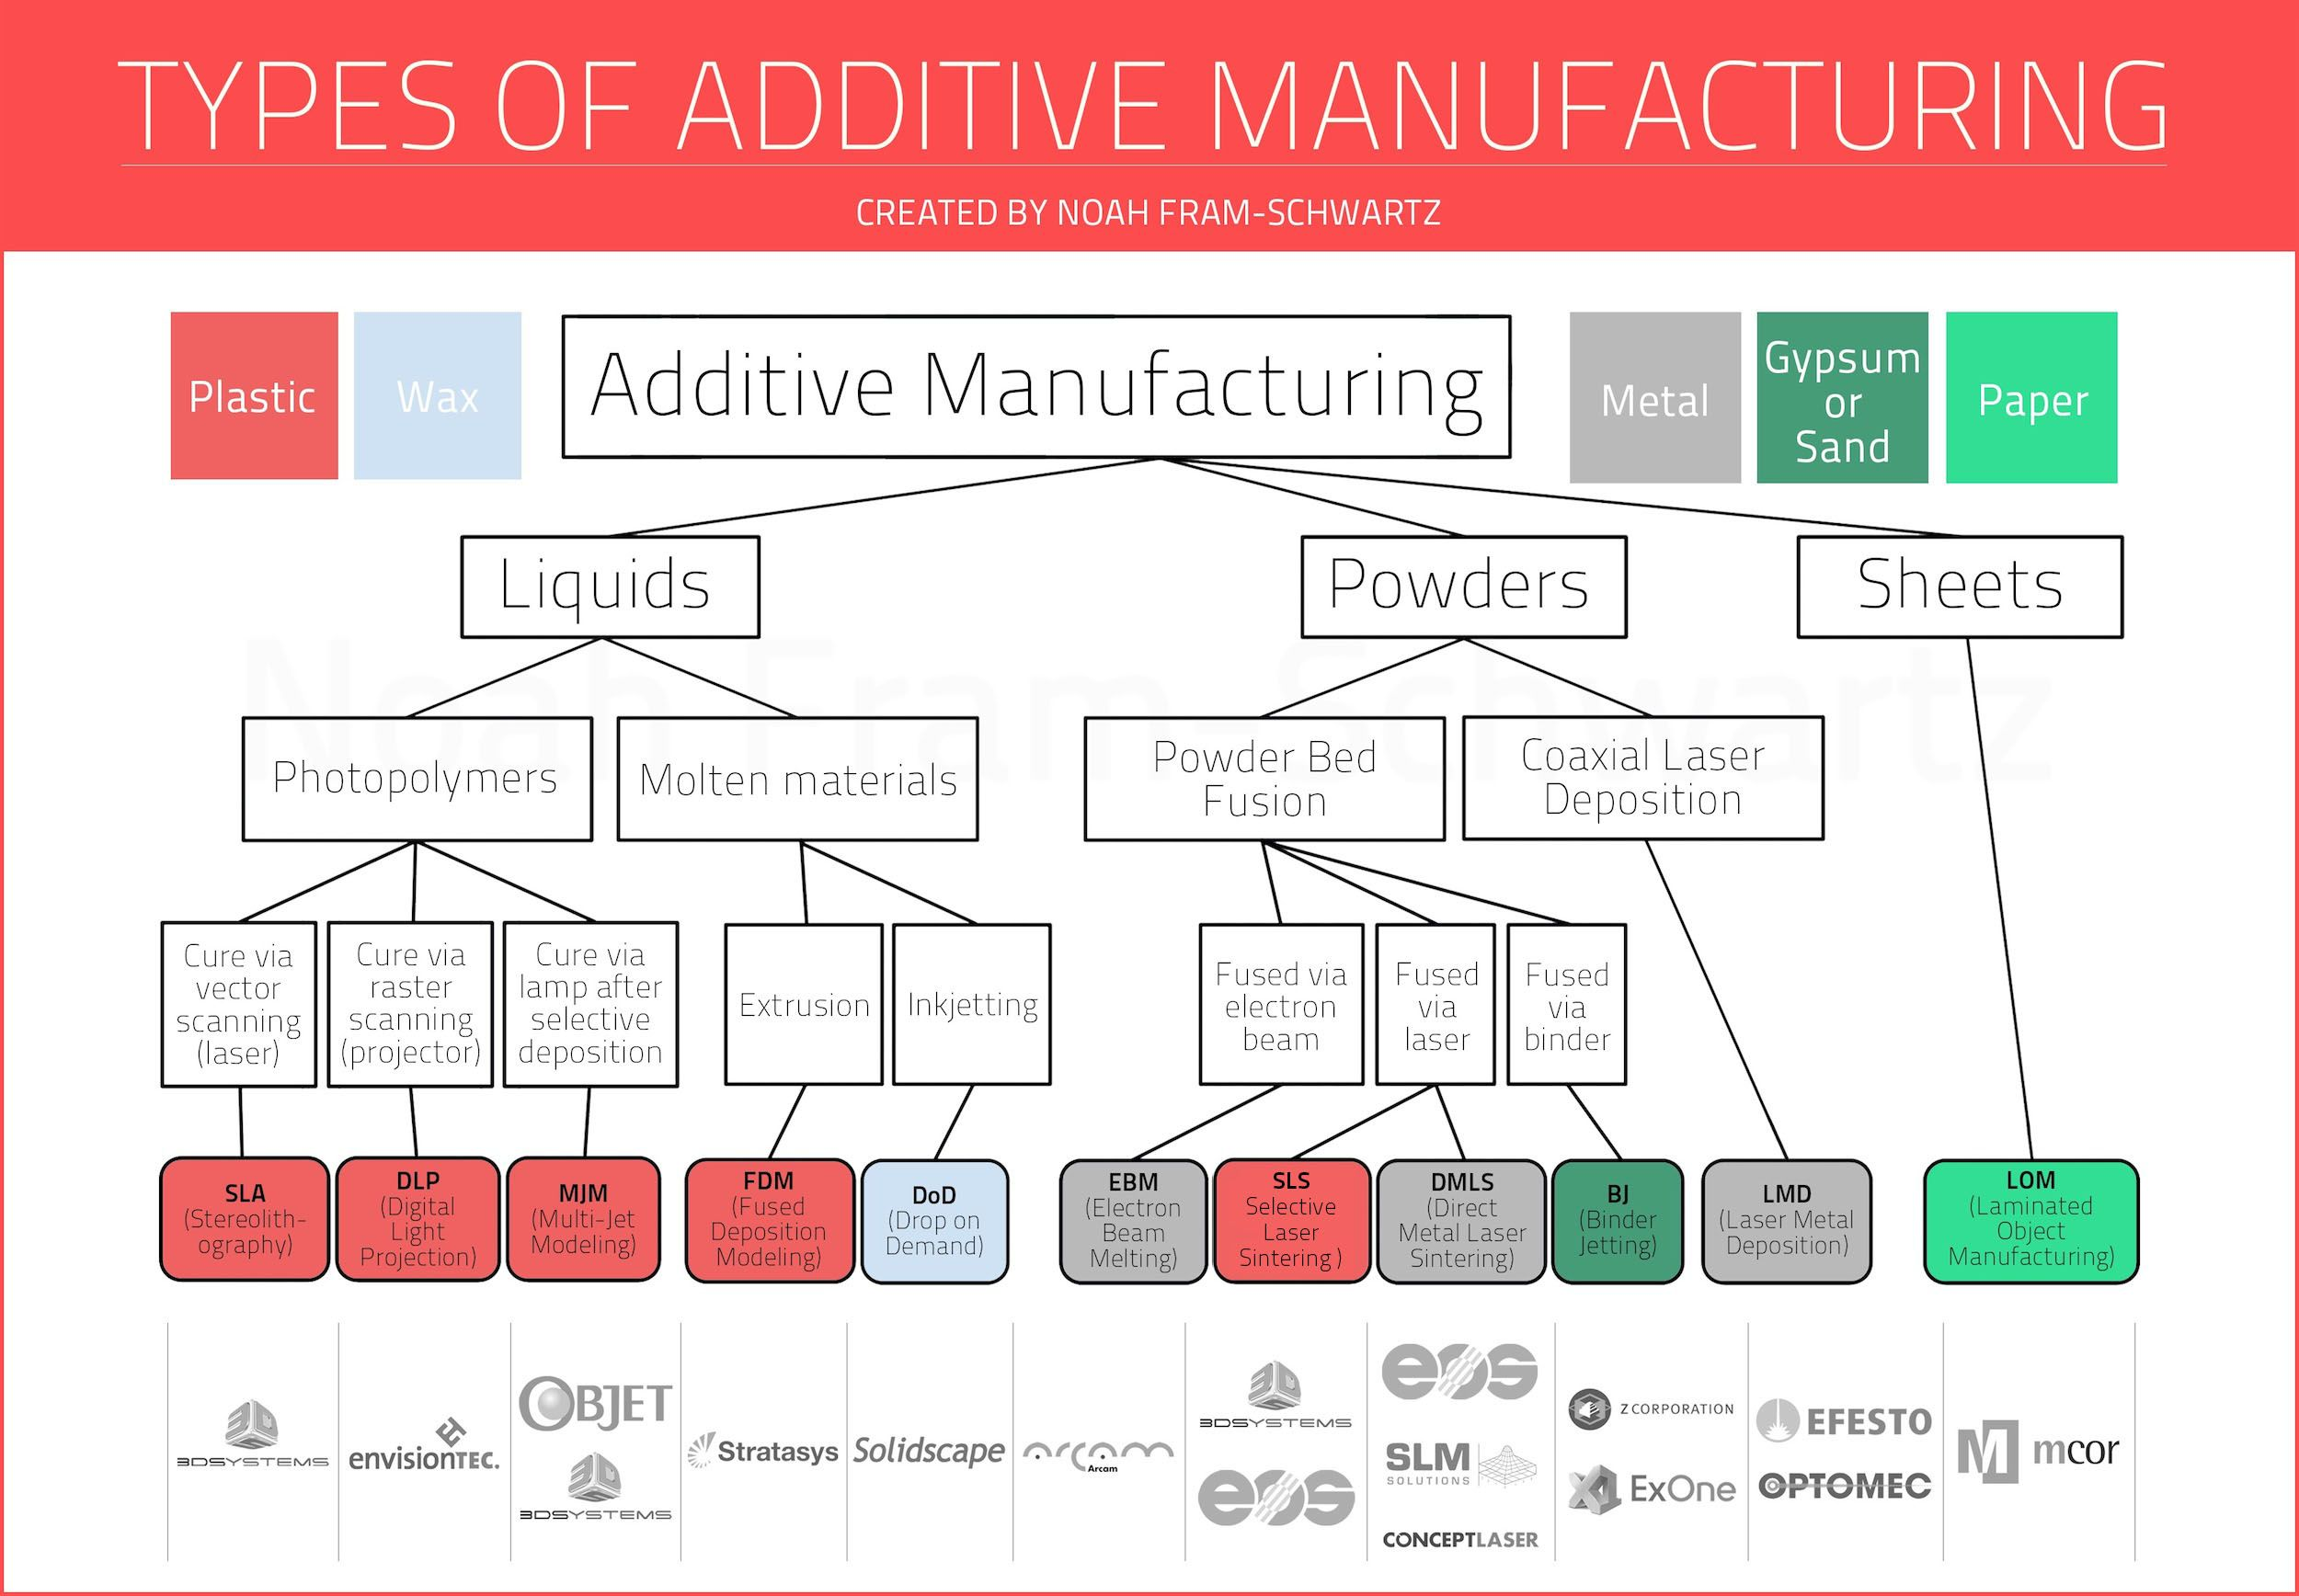 Types Of Additive Manufacturing Infographic According To Noah